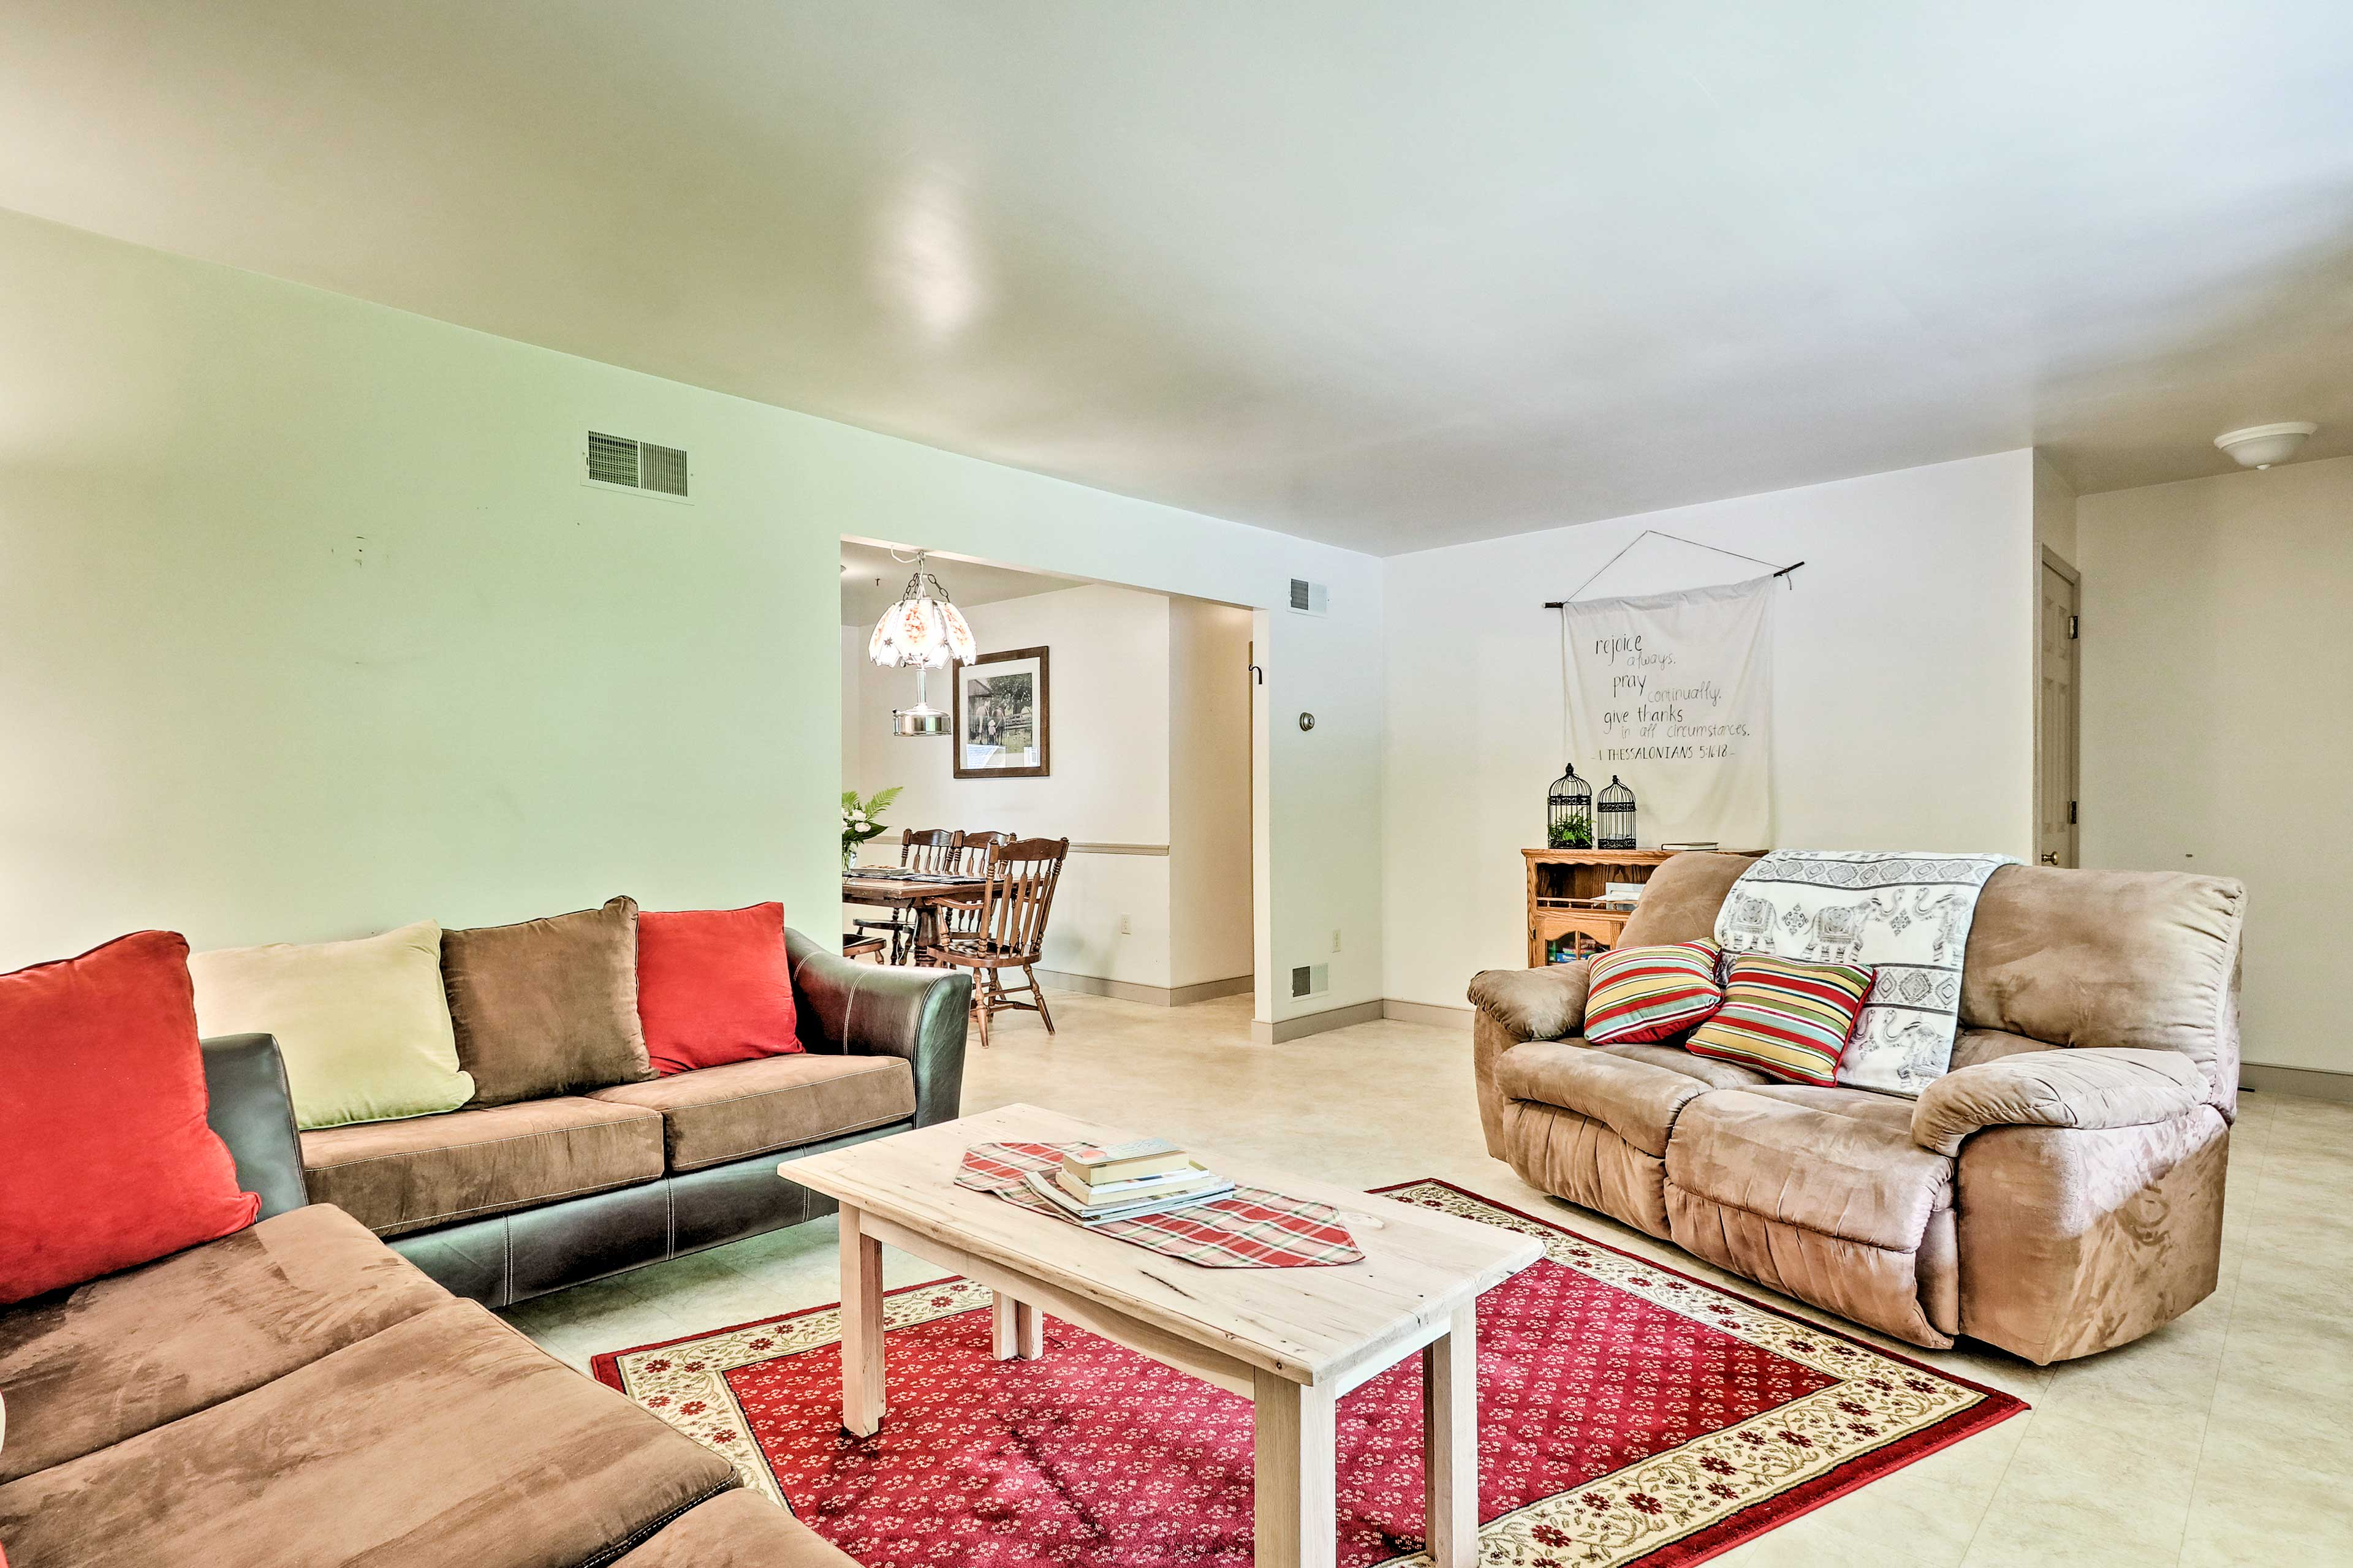 The home comes equipped with wireless internet so you can Netflix & chill!